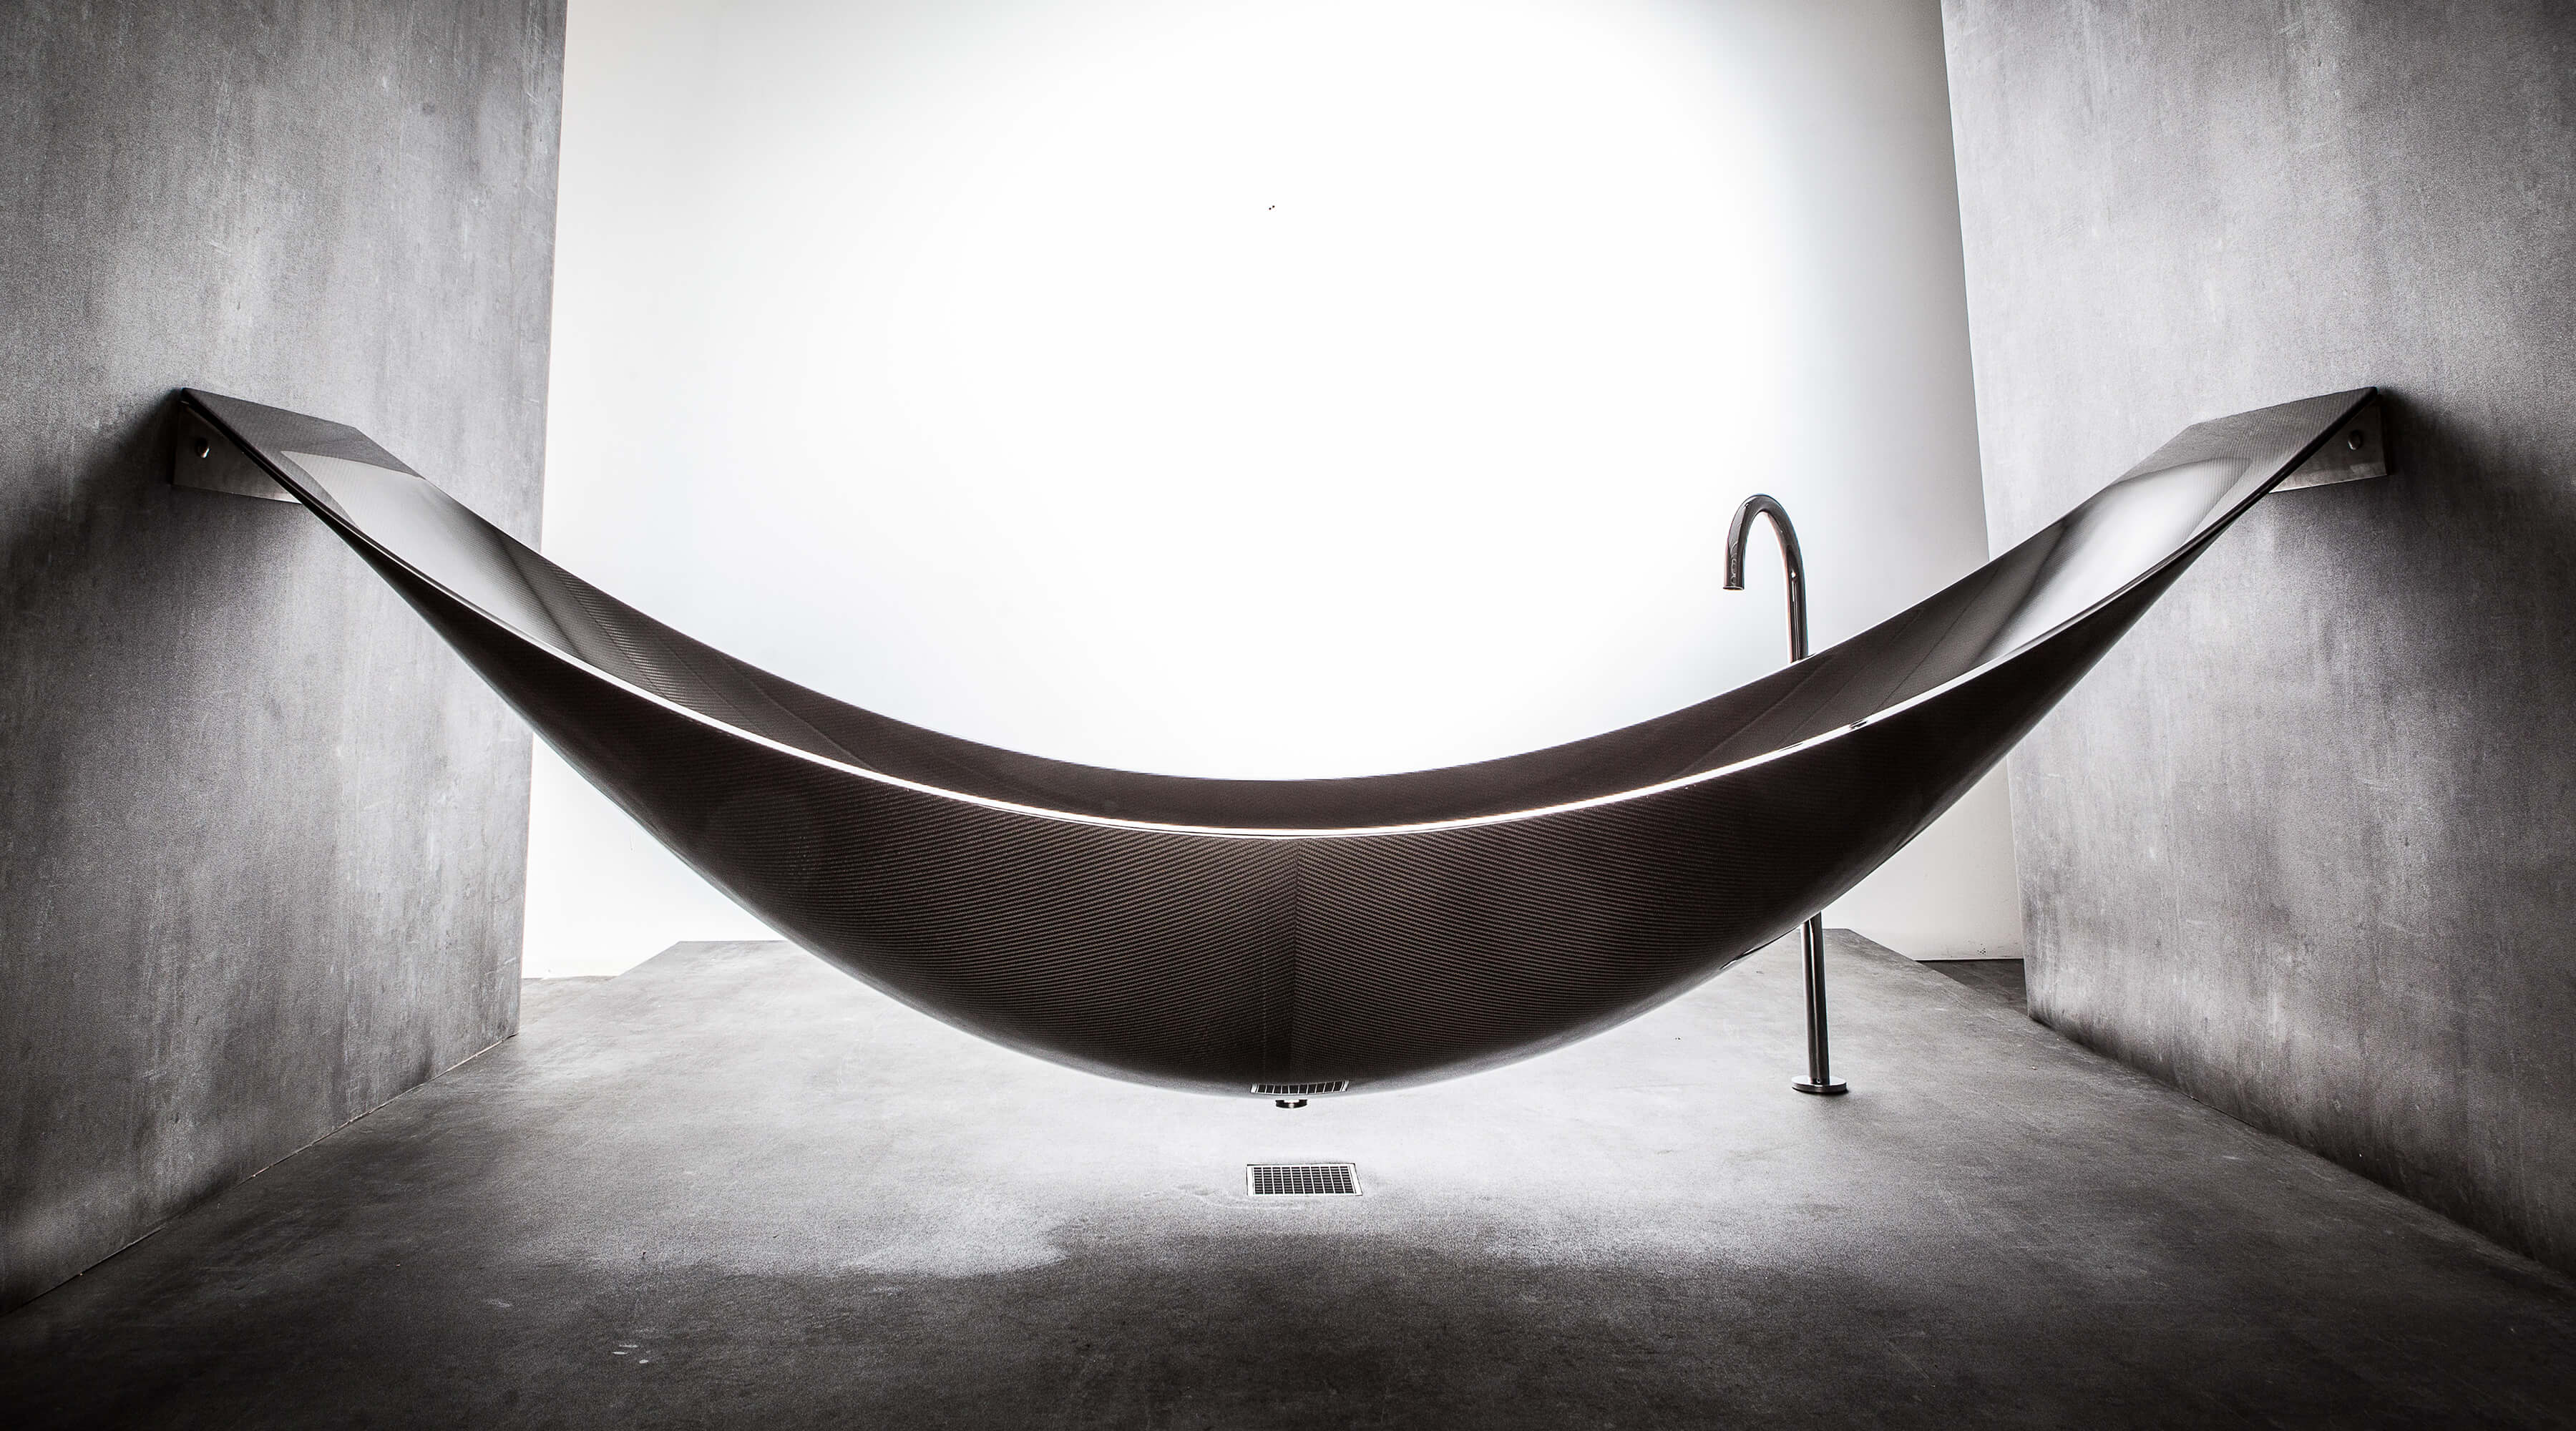 The hammock bath tub by Splinterworks custom made in black carbon fiber